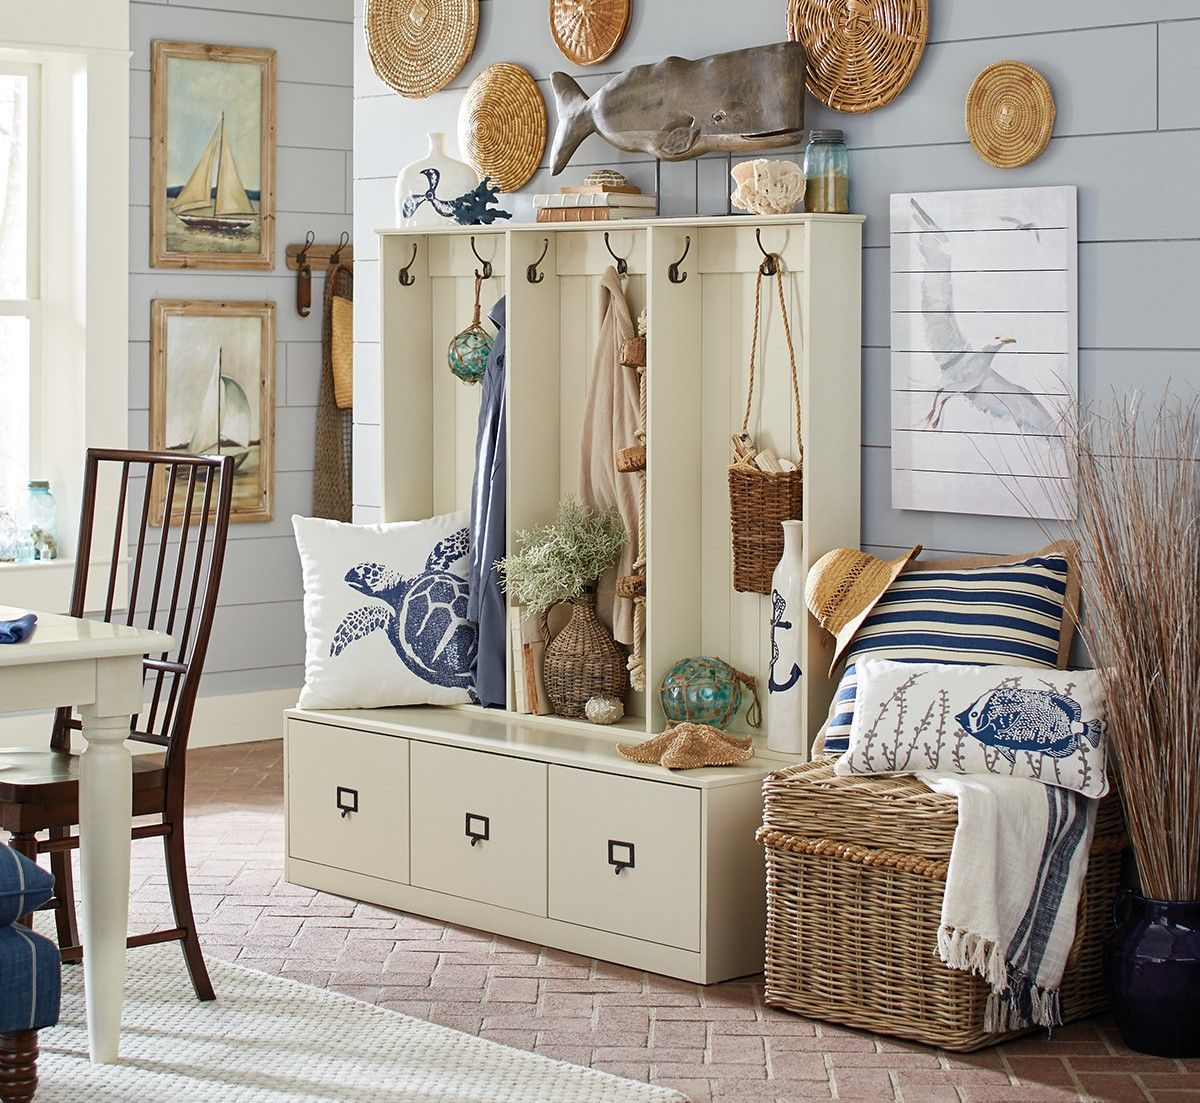 23 Beach Coastal Decor Ideas Inspired Home Decor: Beach Themed Entryway